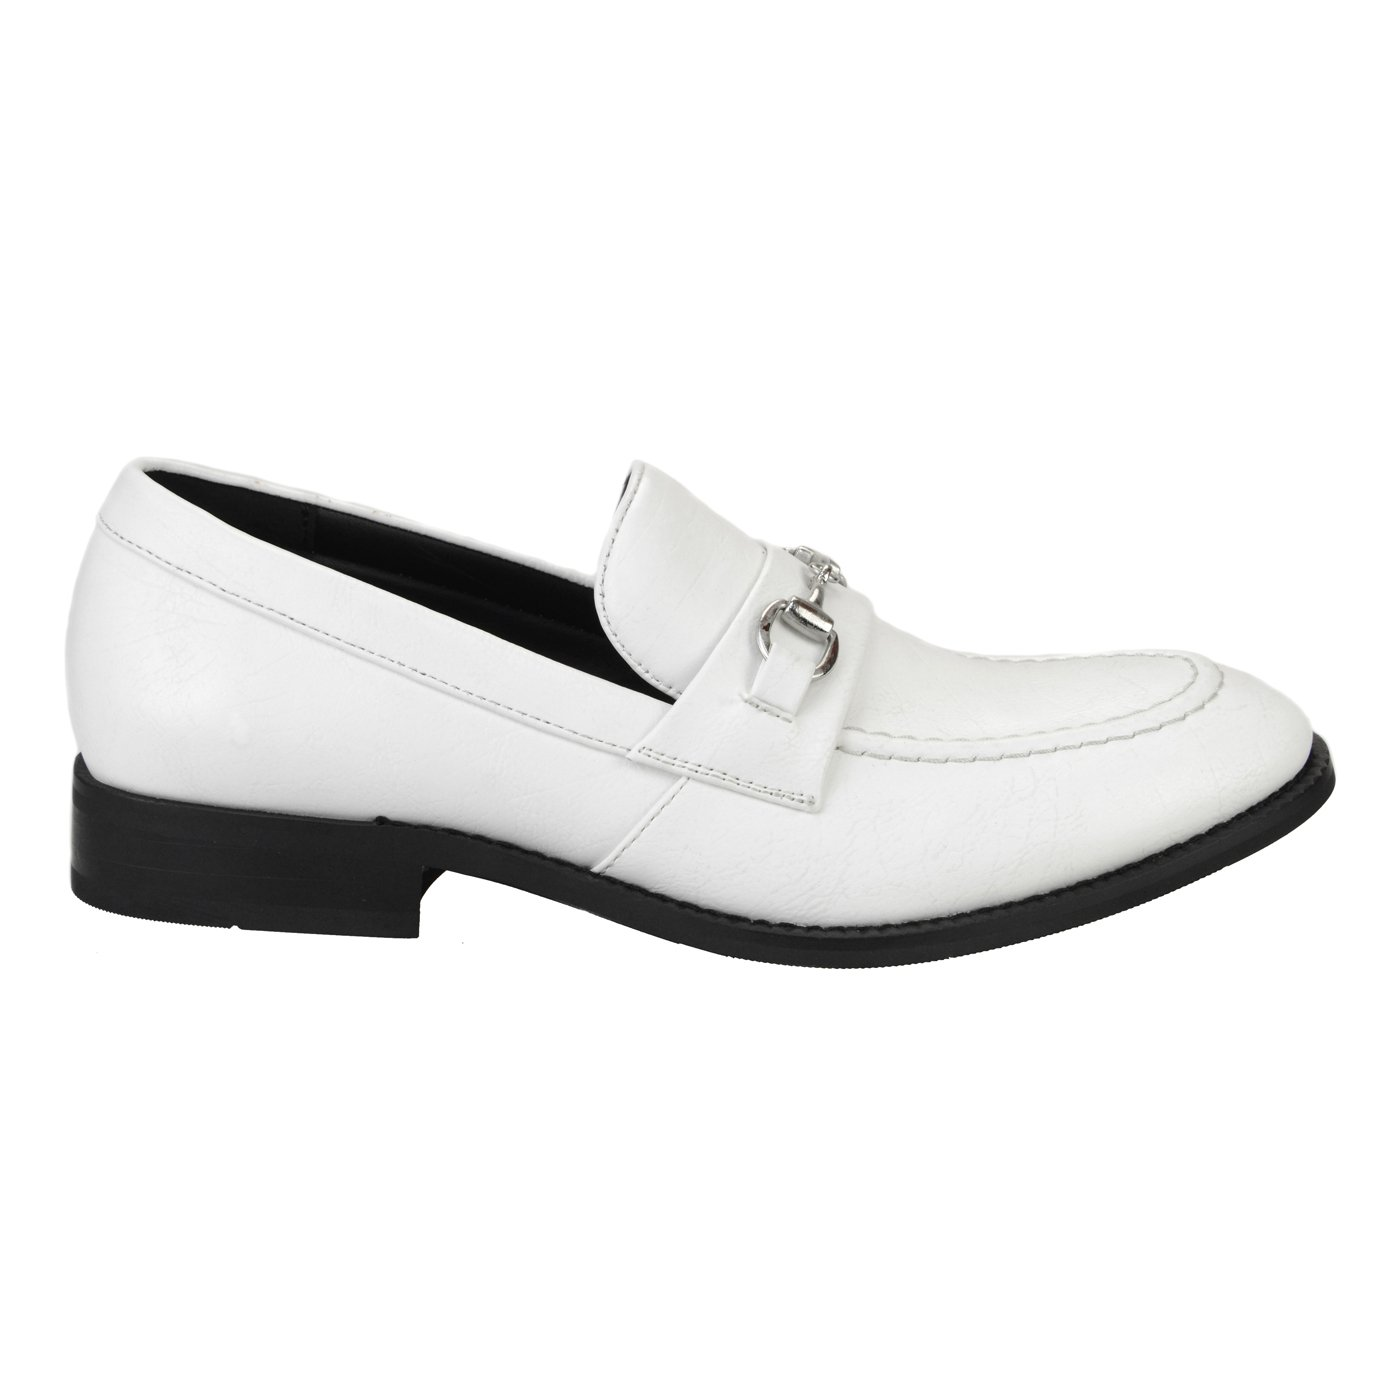 AN by Lucius Loafers Casual Shoes Slipon Oxford Boots Mens Shoes WhiteST 42 EU (US Men's 9-9.5 M)